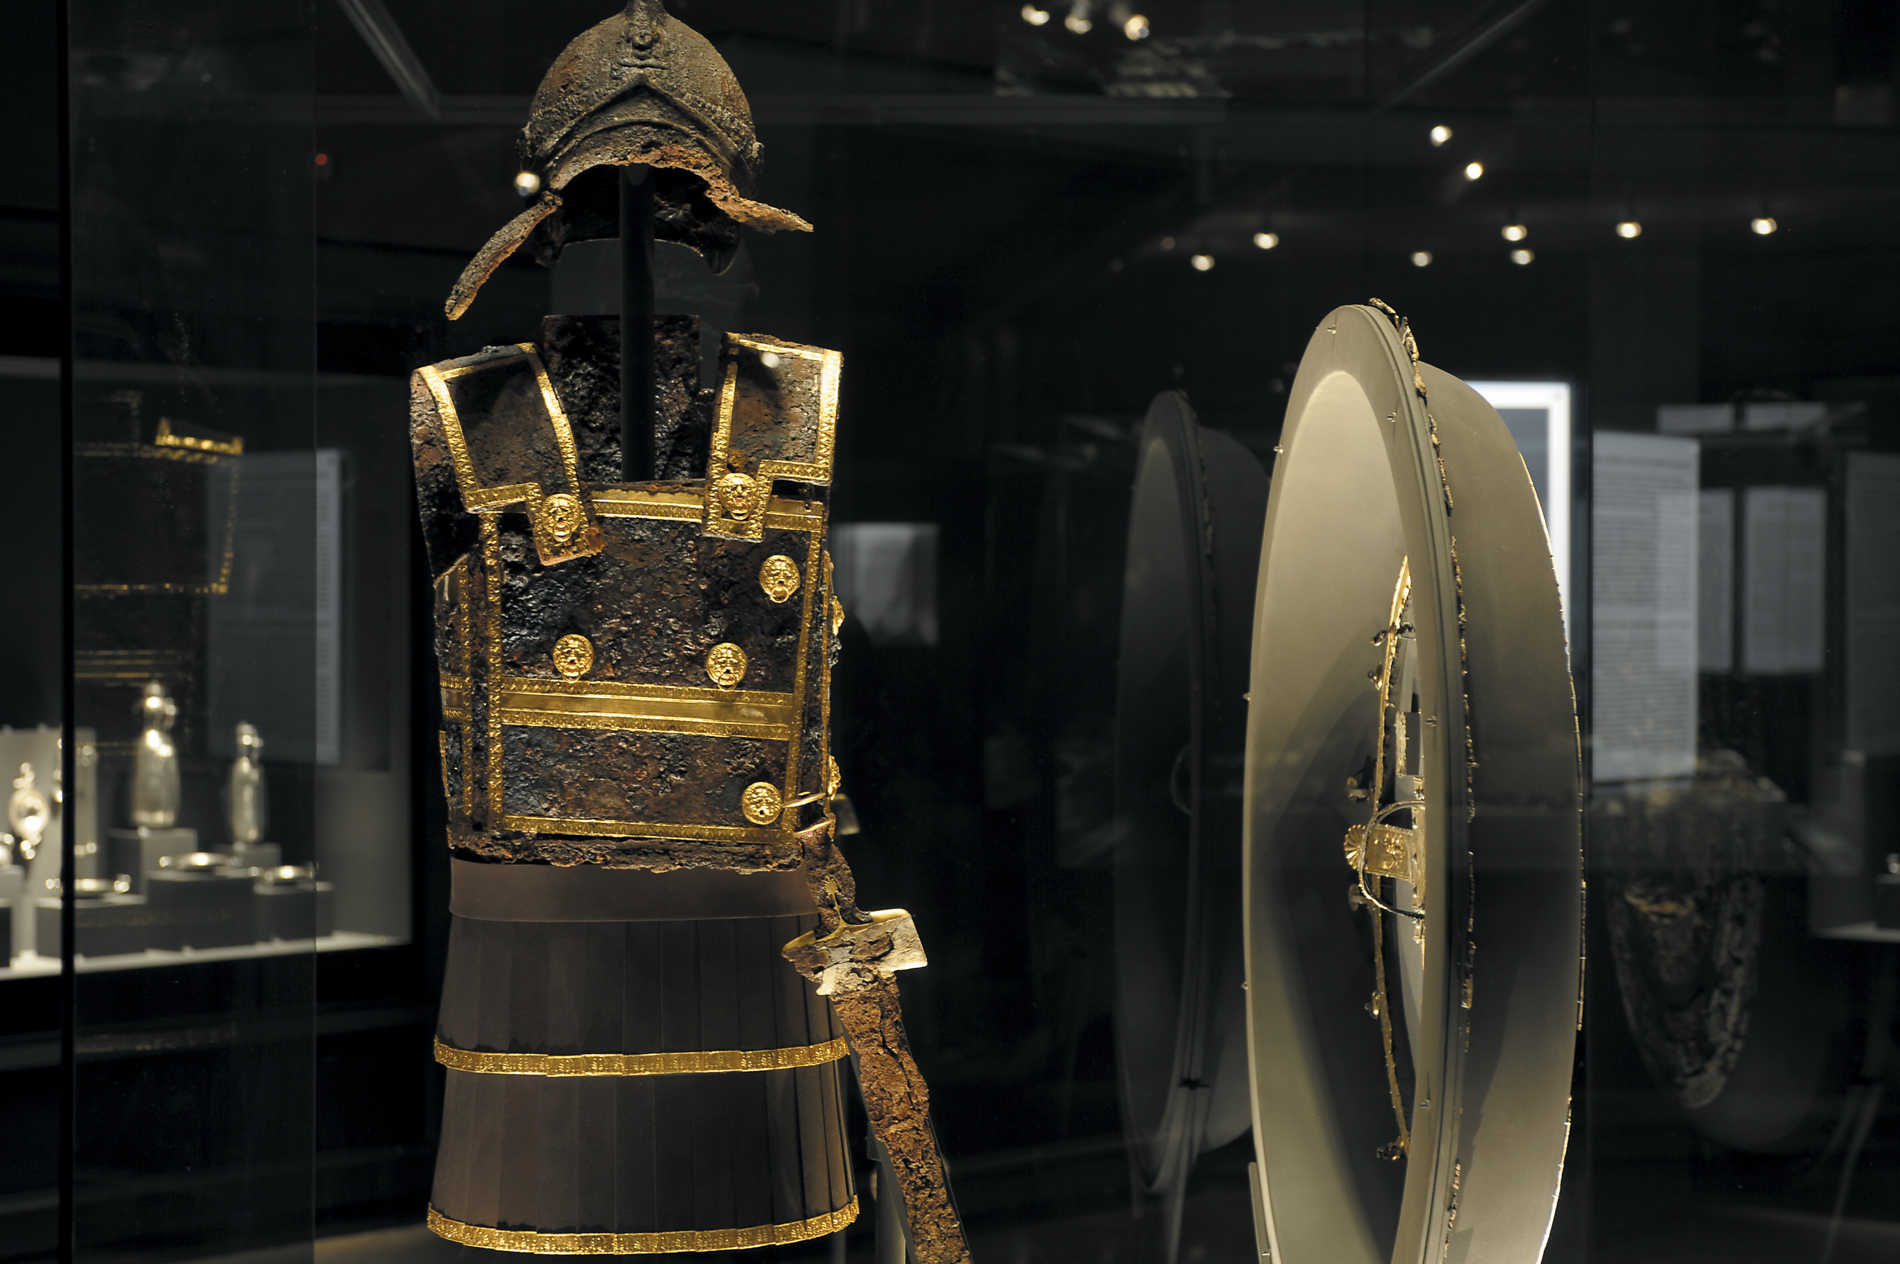 Philip II's armour and shield